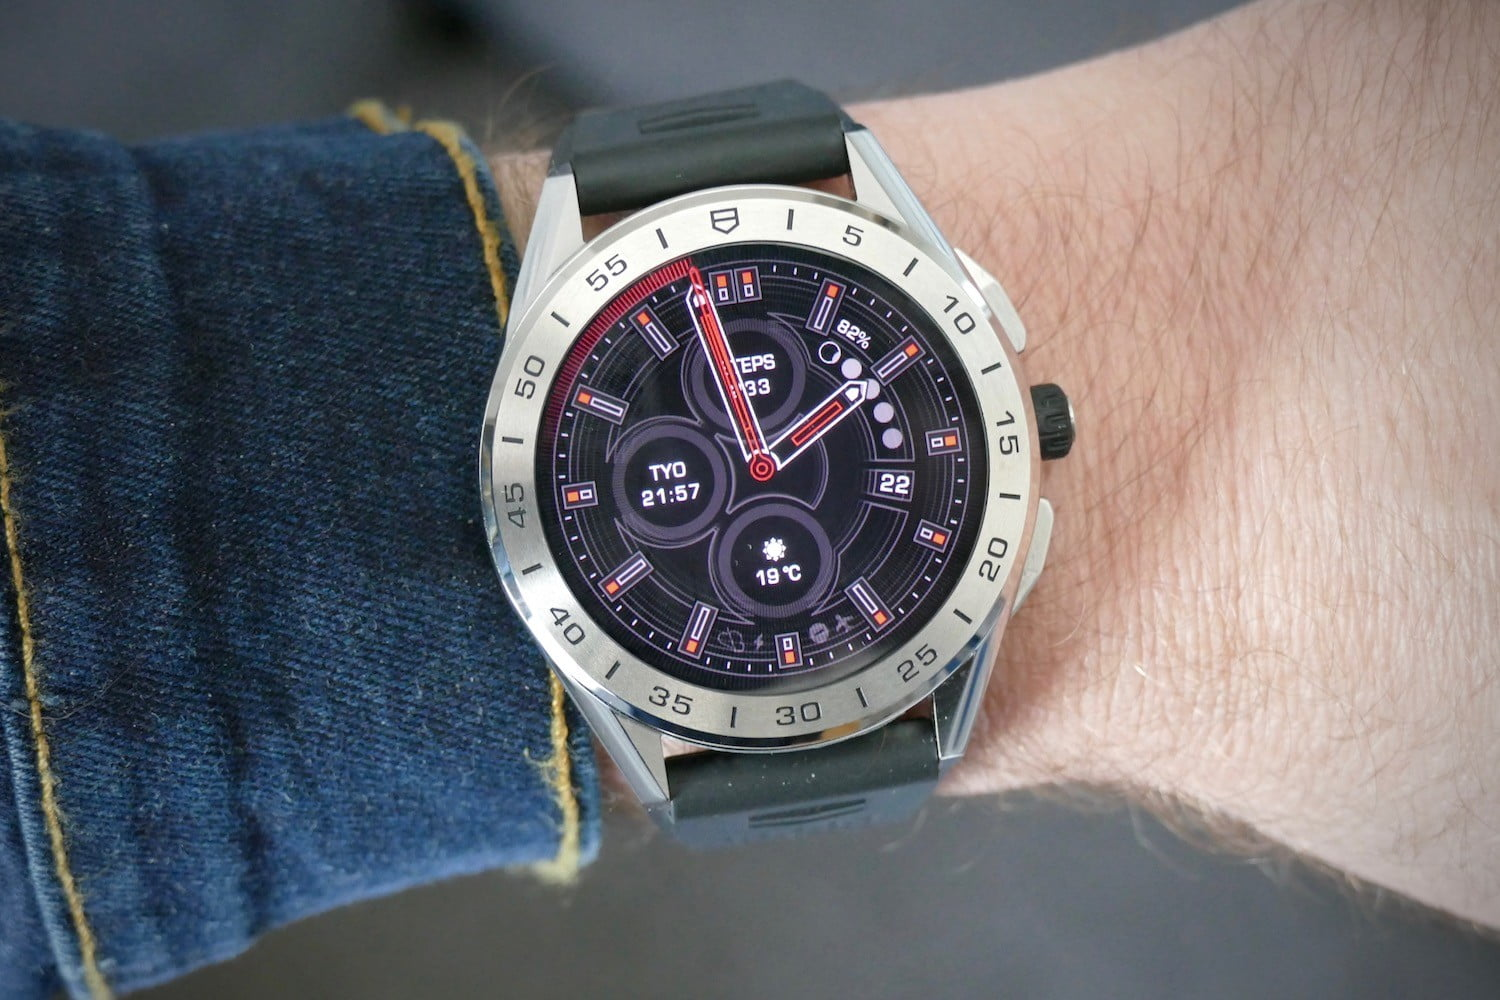 tag heuer connected 2020 smartwatch review 01c face